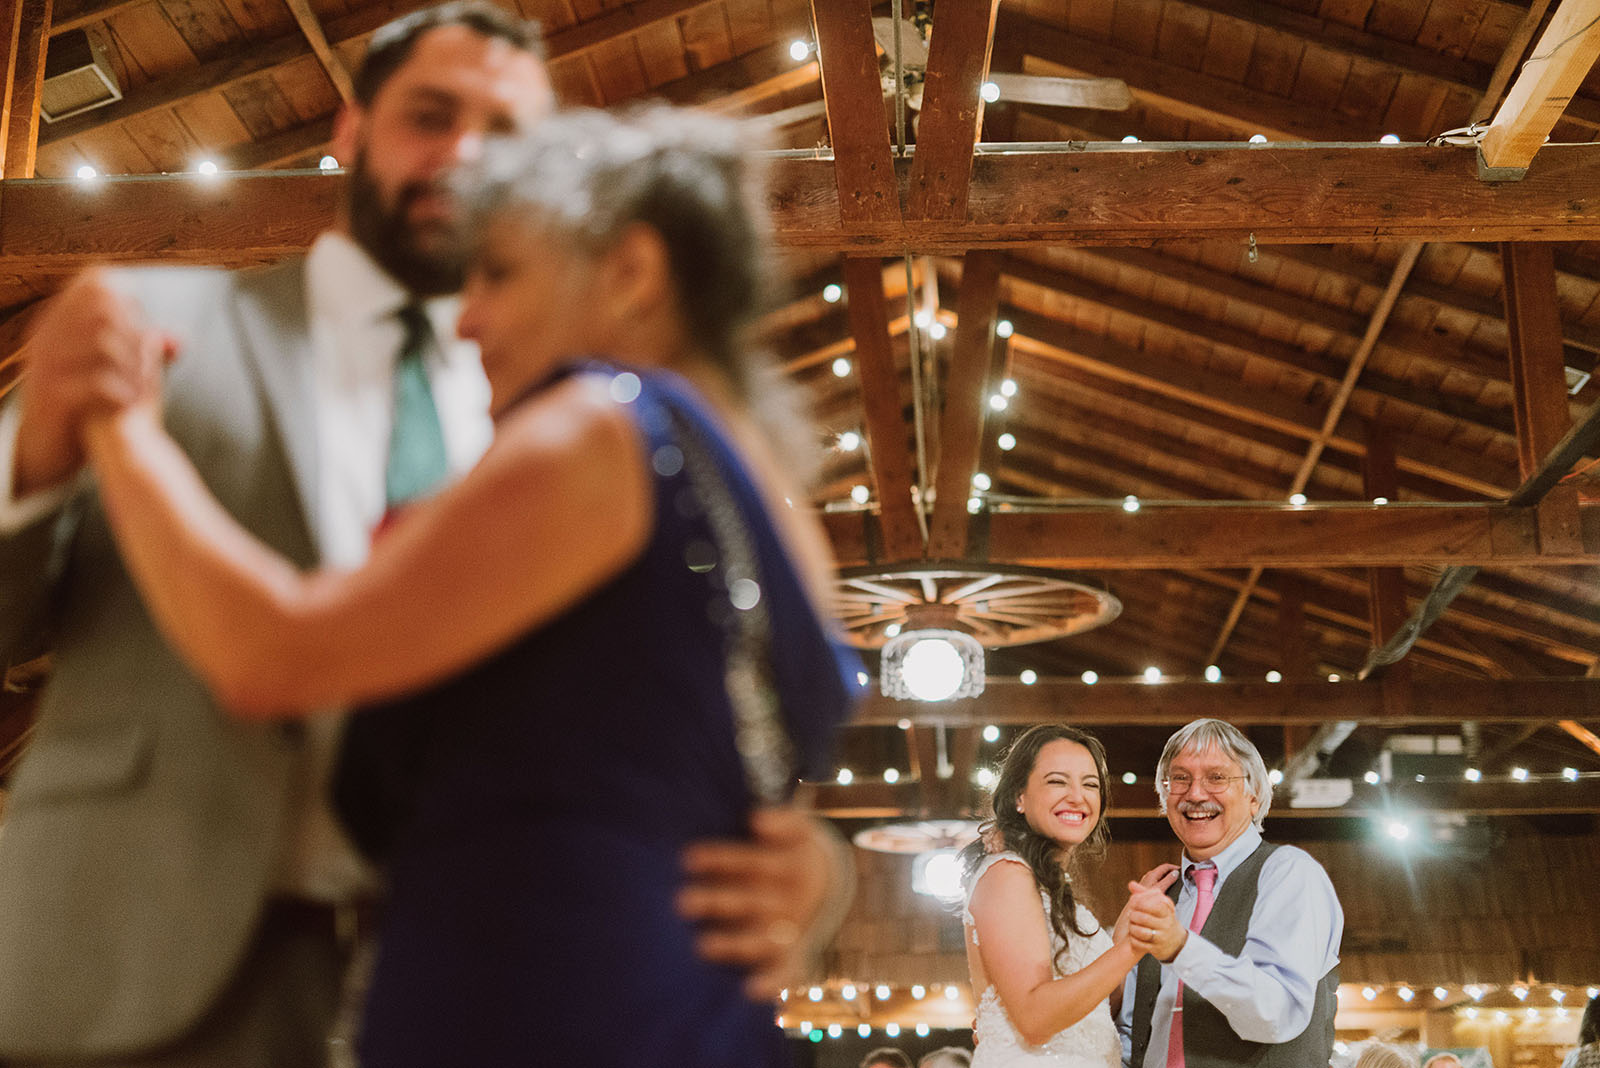 First dances with the newlyweds' parents at a Cedarville Lodge Wedding